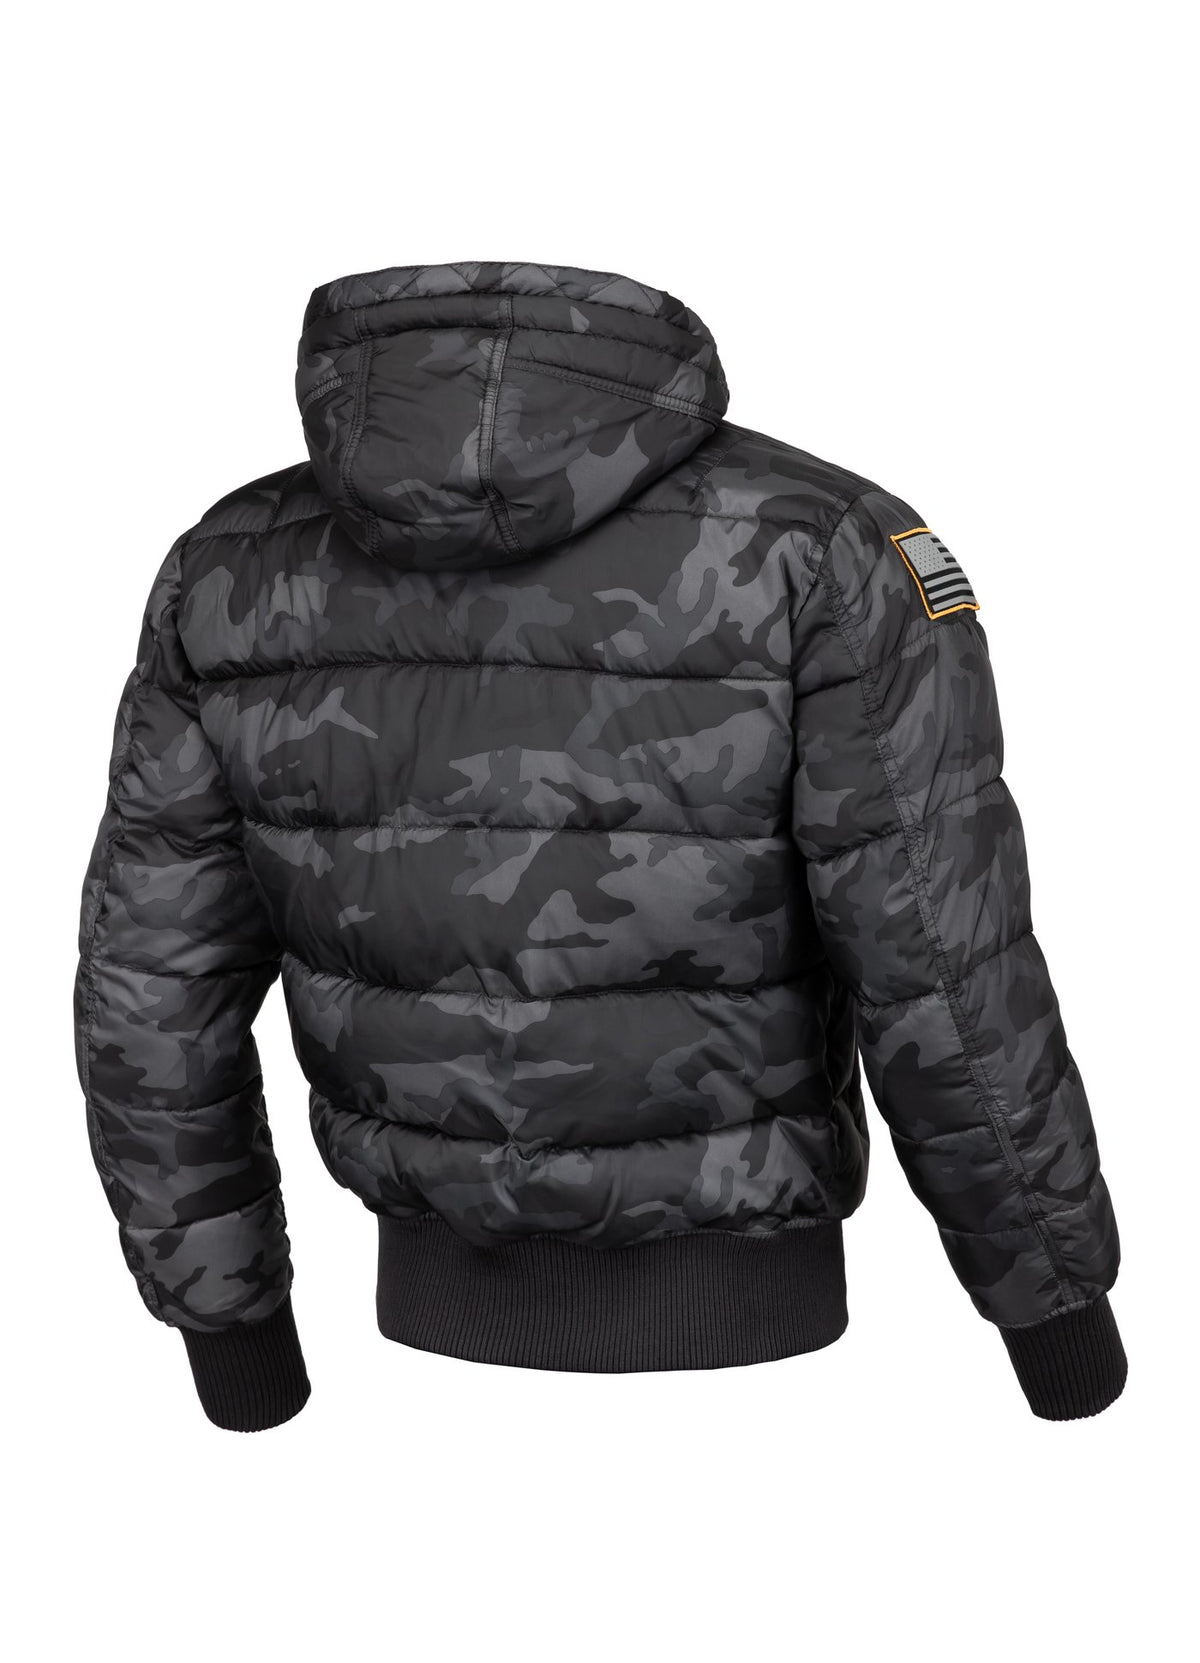 Jacket TOPSIDE All Black Camo - Pitbull West Coast U.S.A.